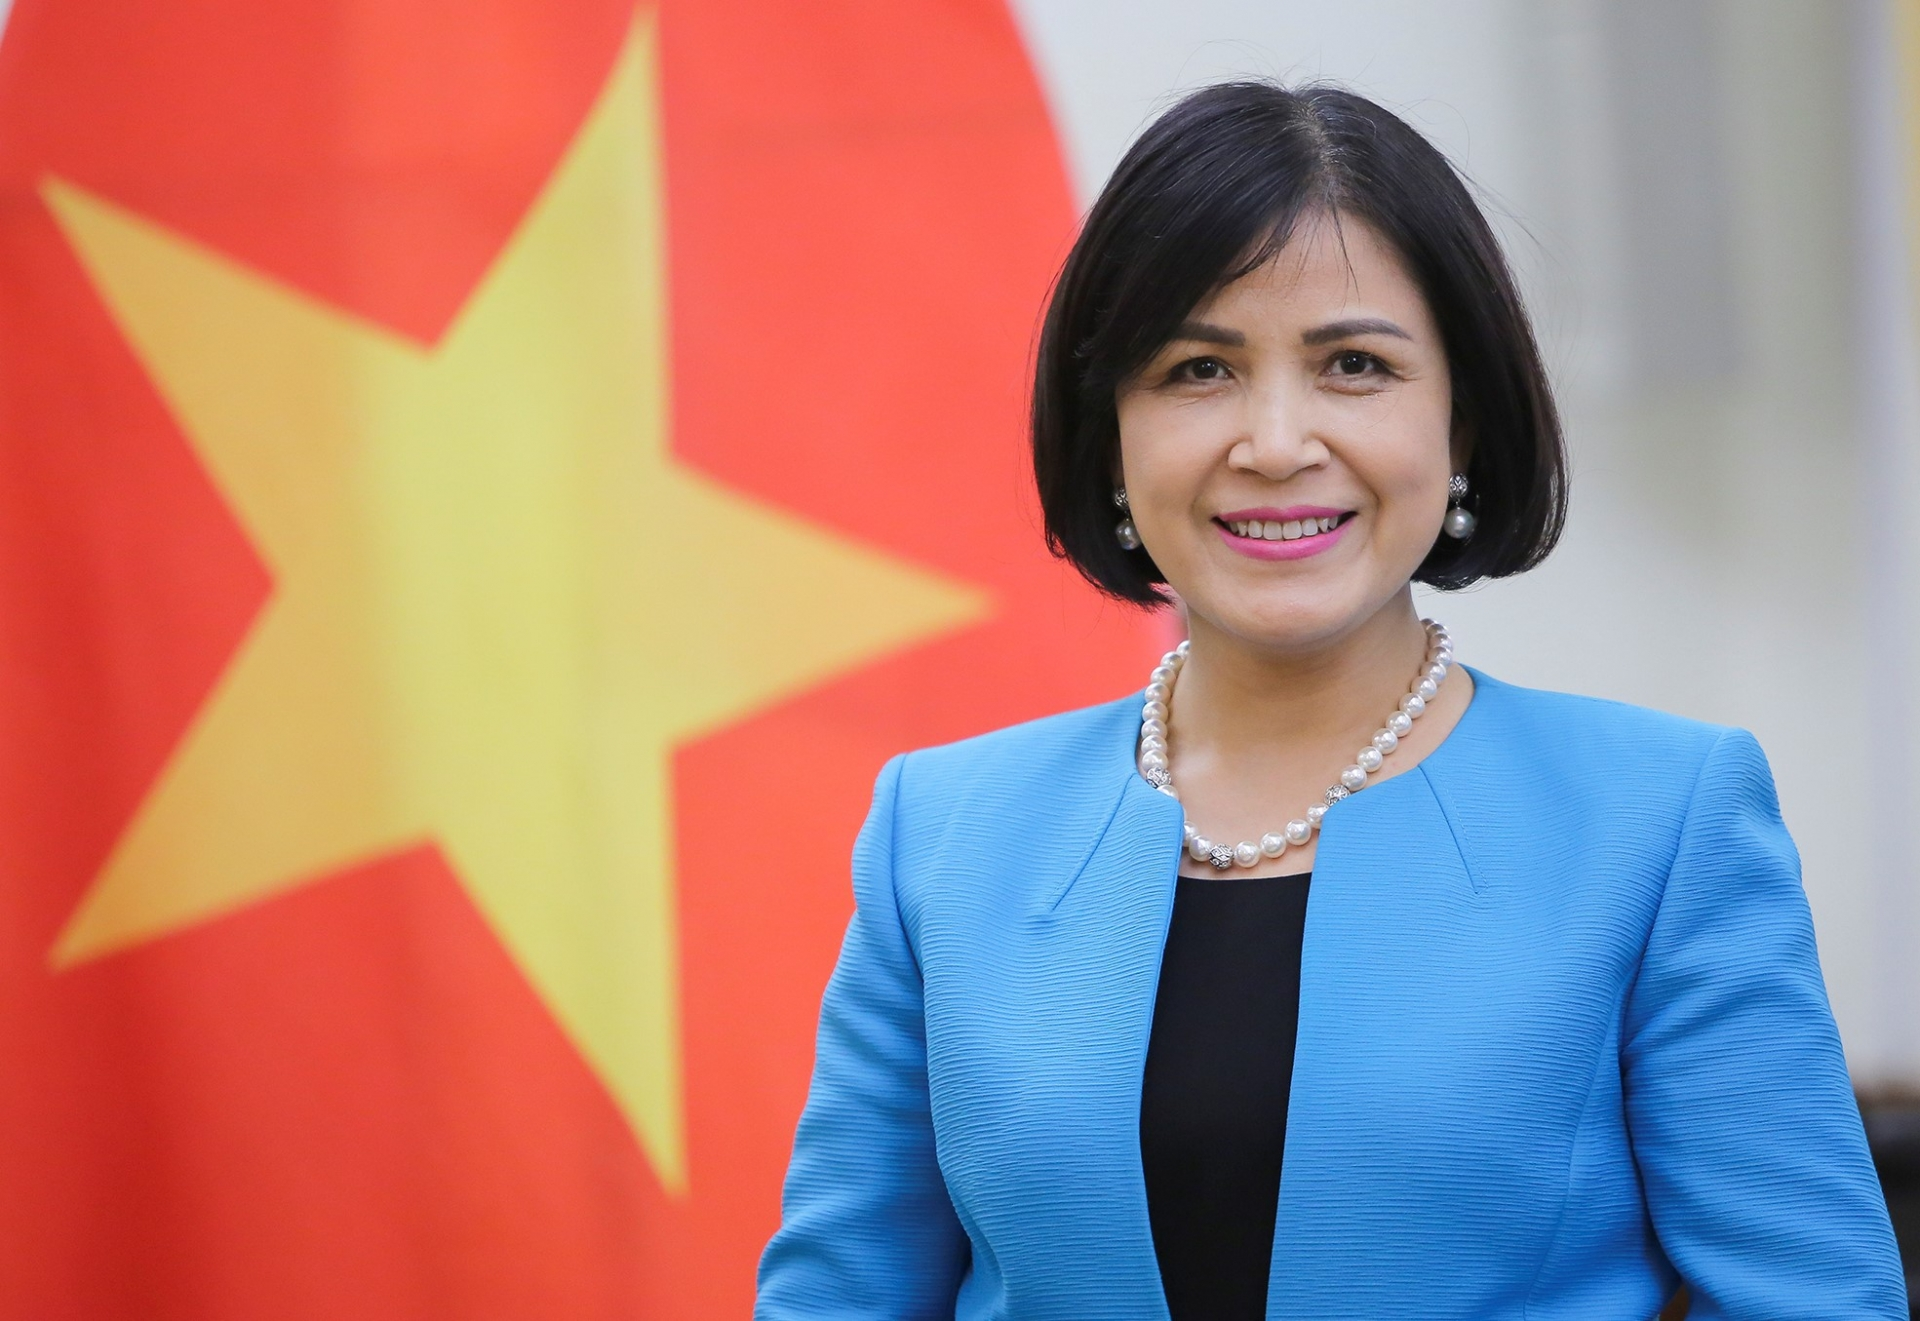 vietnam pledges to ensure human rights amid global pandemic